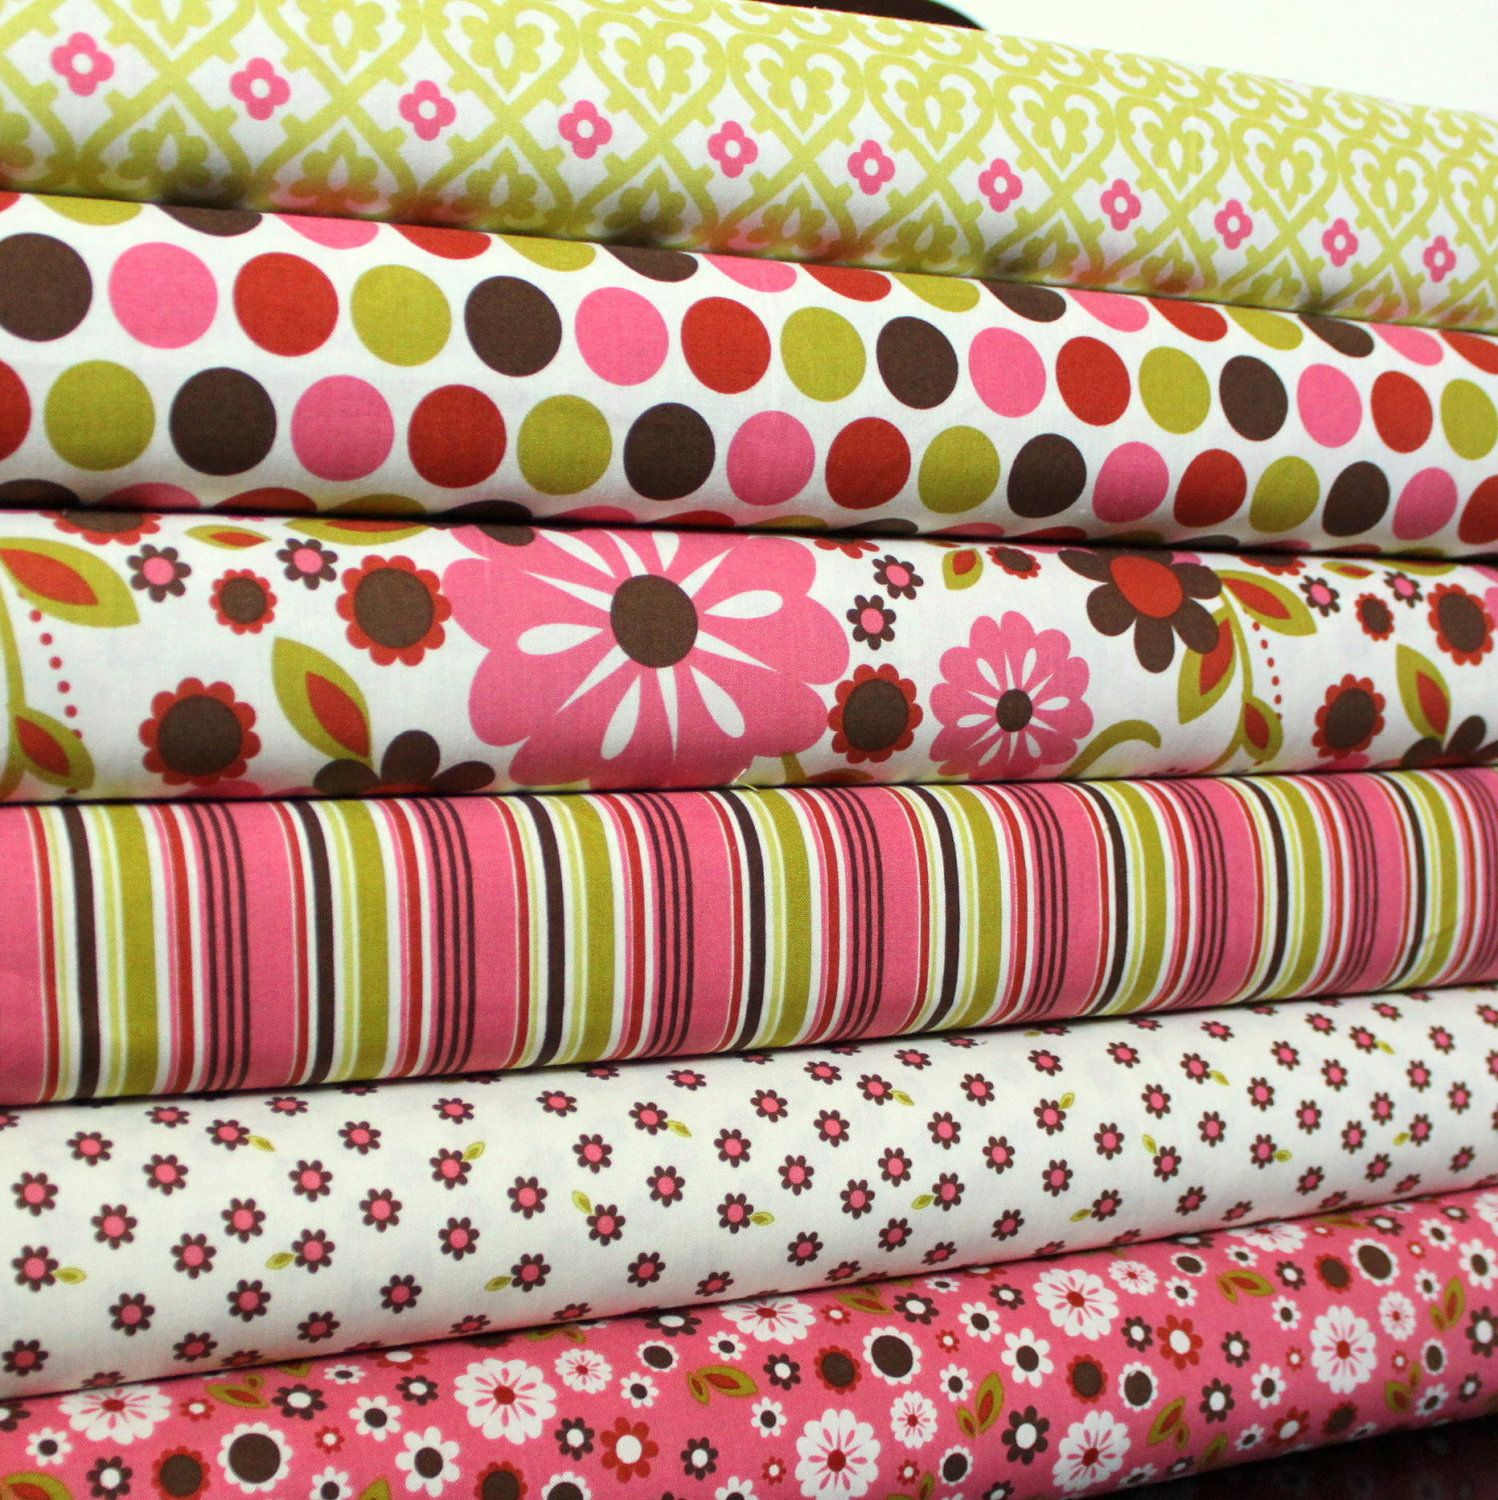 Brown And Pink Fl Fabric Indian Summer By Zoe Pearn For Riley Blake Half Yard Bundle 6 Prints 3 Yards Total Baby Crib Beddingbaby